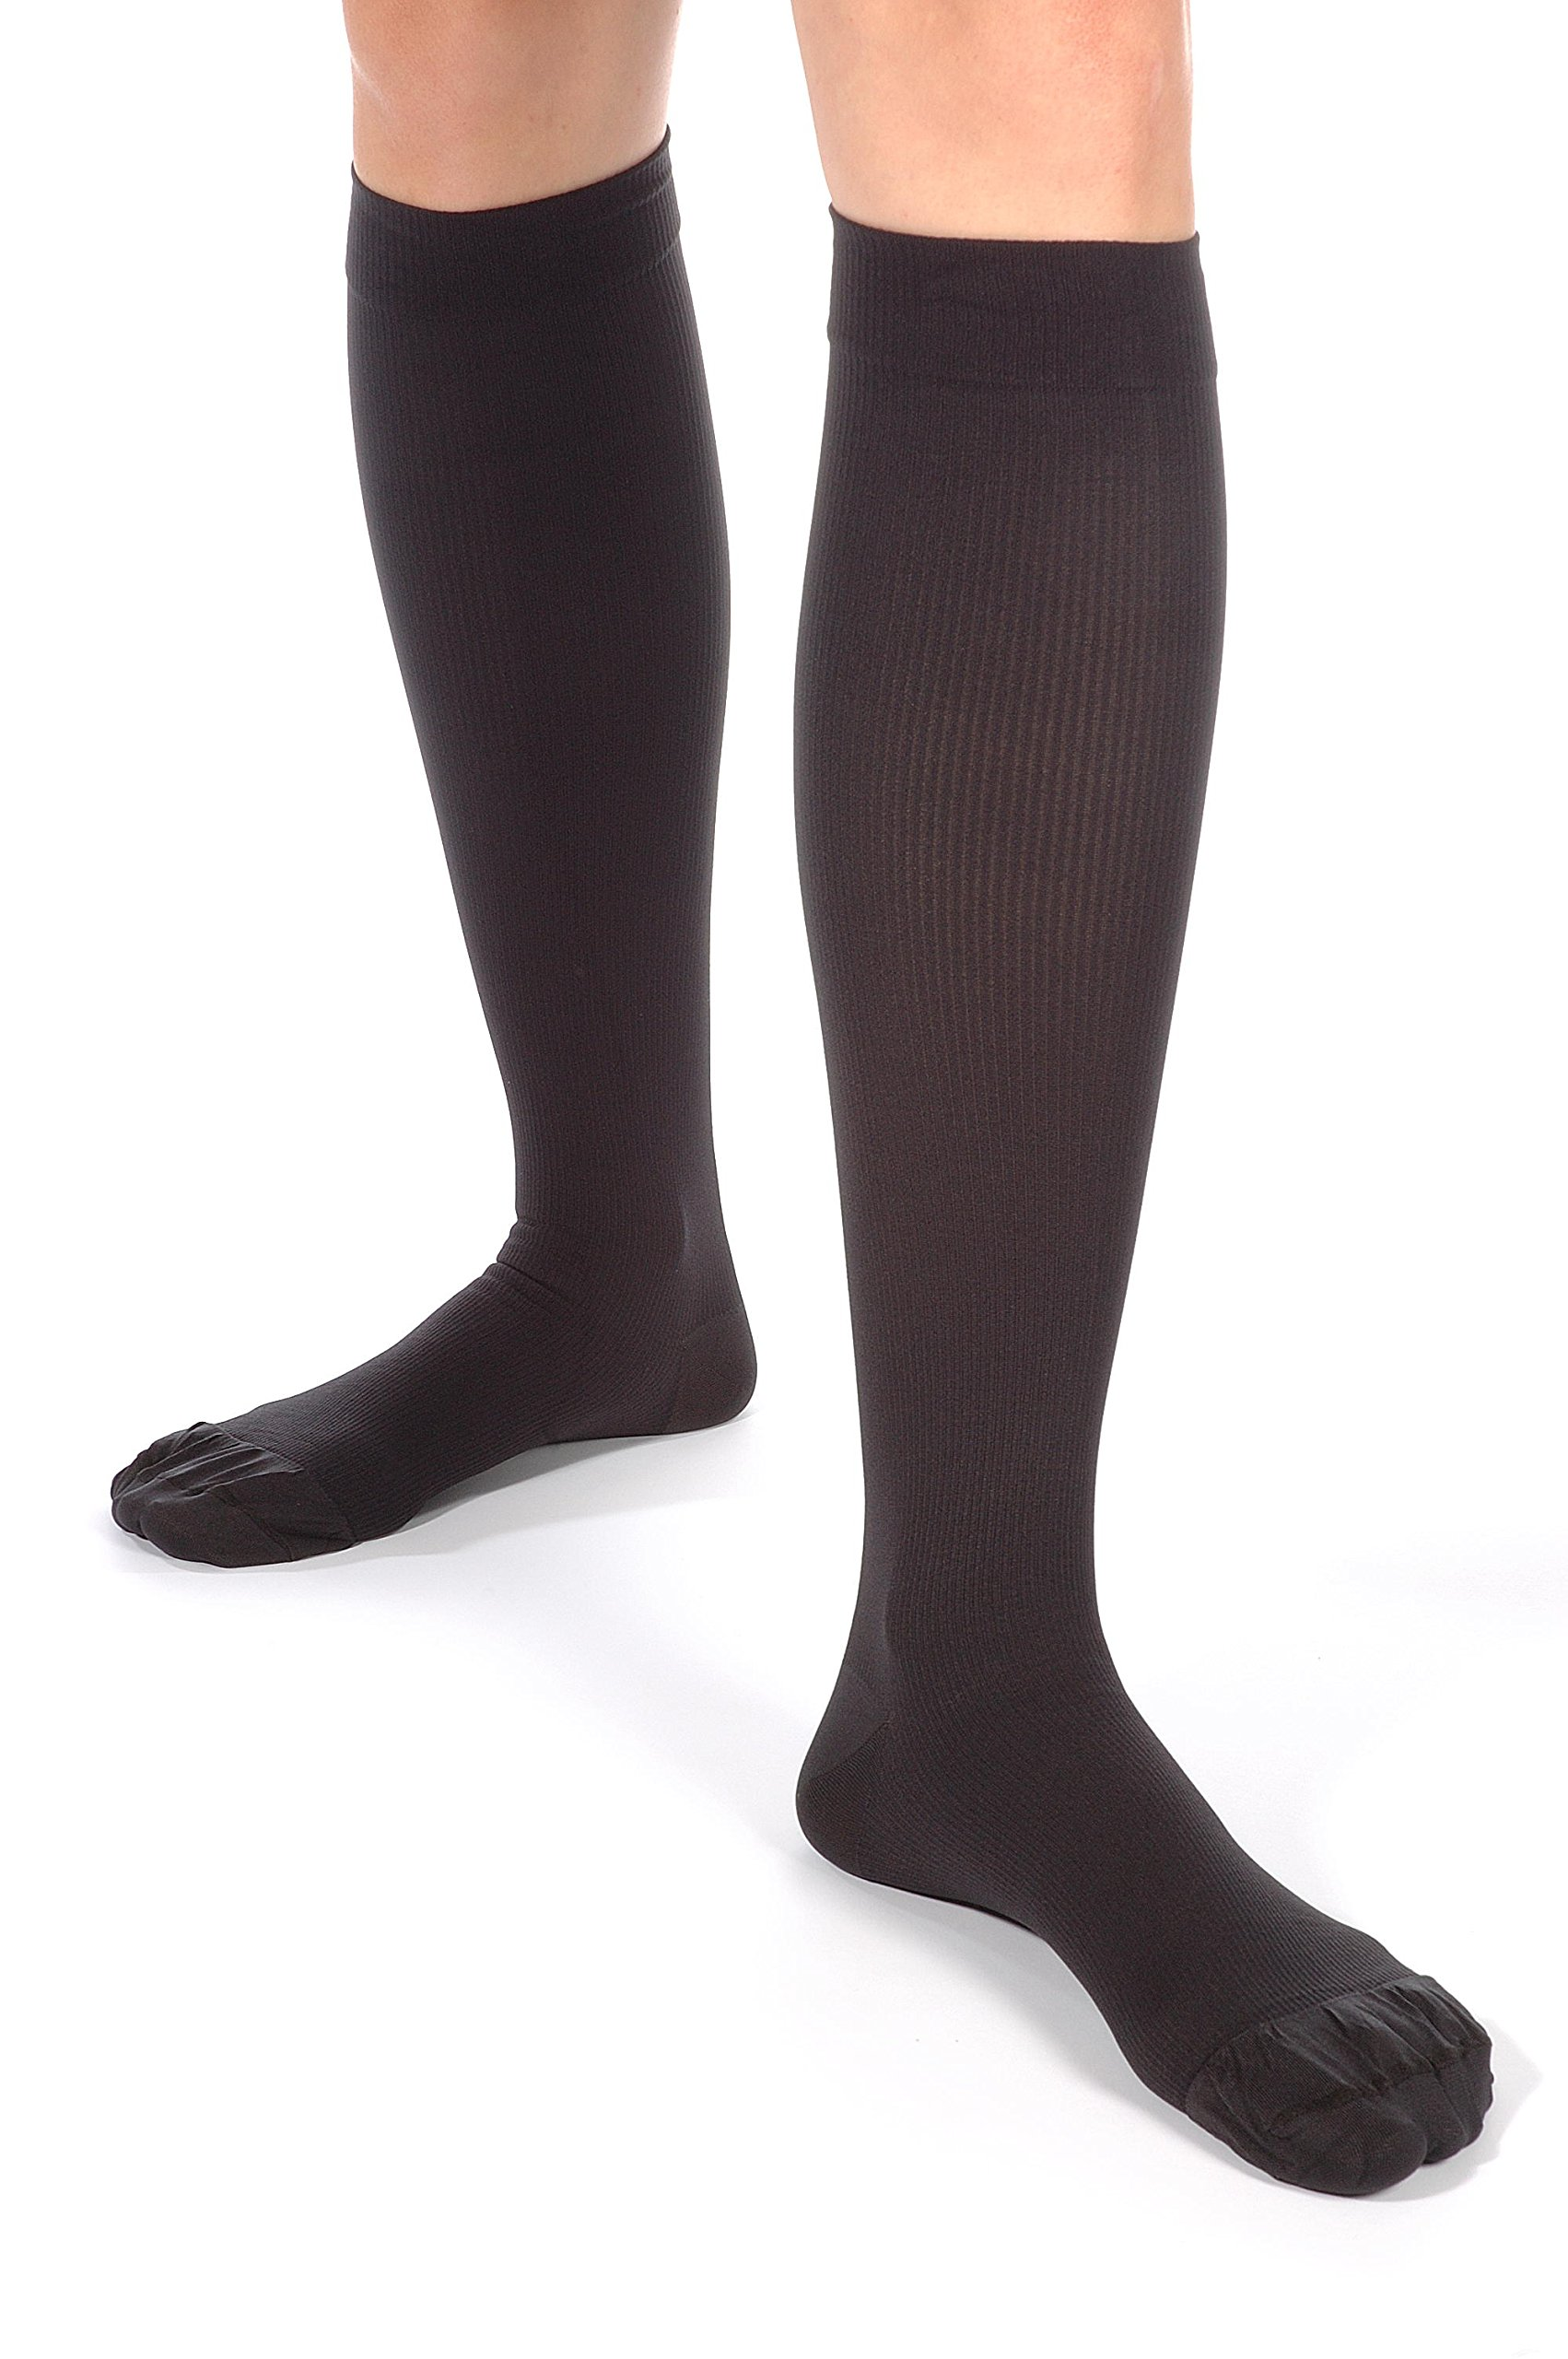 Made in USA Compression Socks for Men 30-40 mmHg - Soft Microfiber Material - X-Firm Dress Support Socks - Closed Toe - Absolute Support SKU: A305BL4